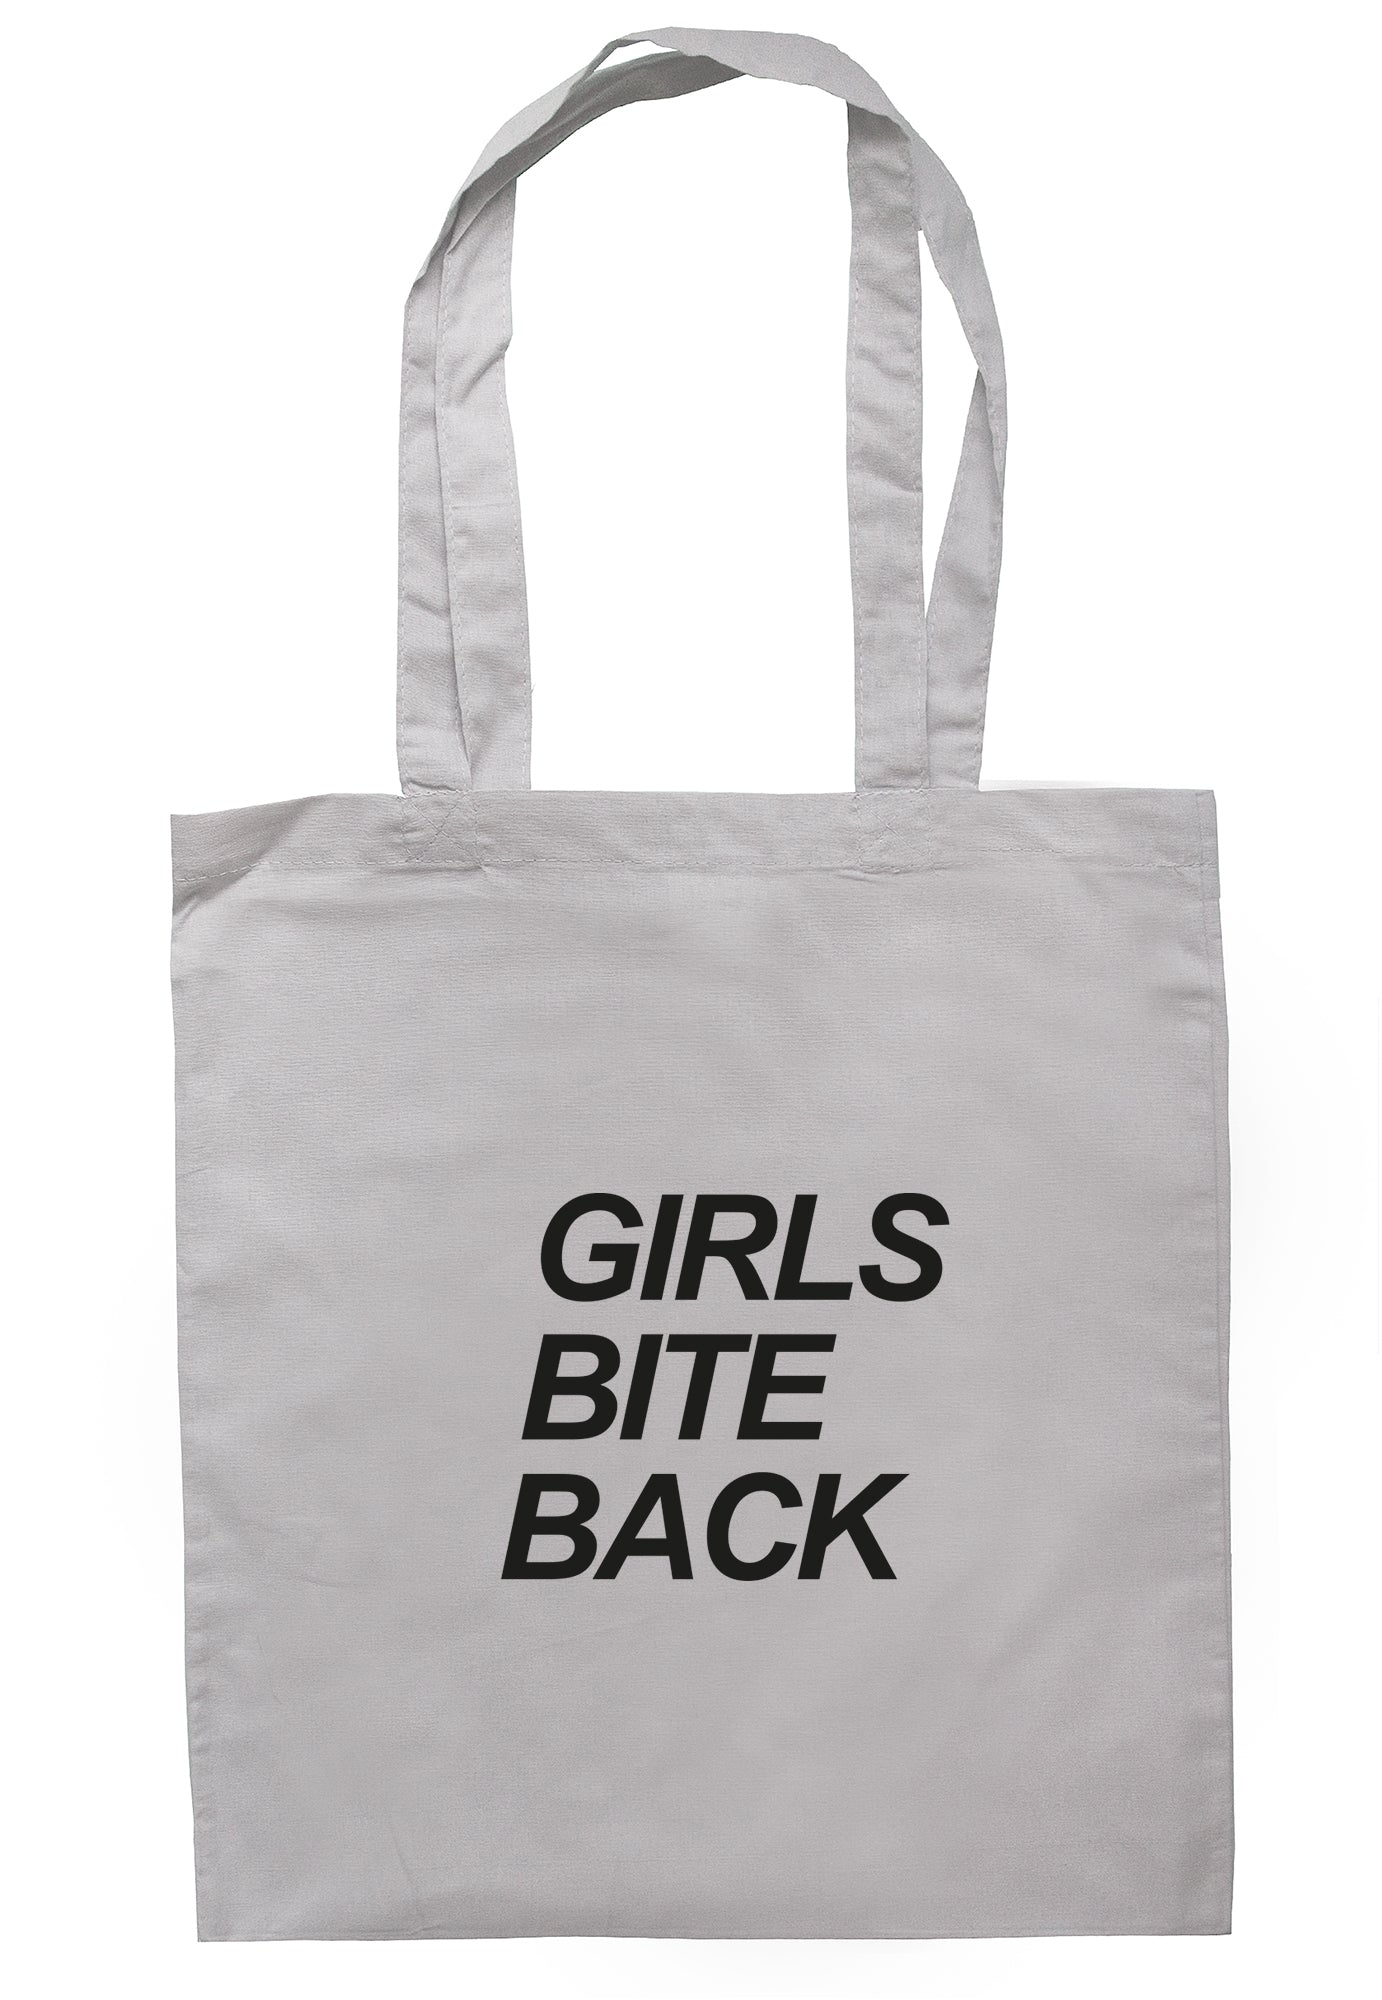 Girls Bite Back Tote Bag S1023 - Illustrated Identity Ltd.